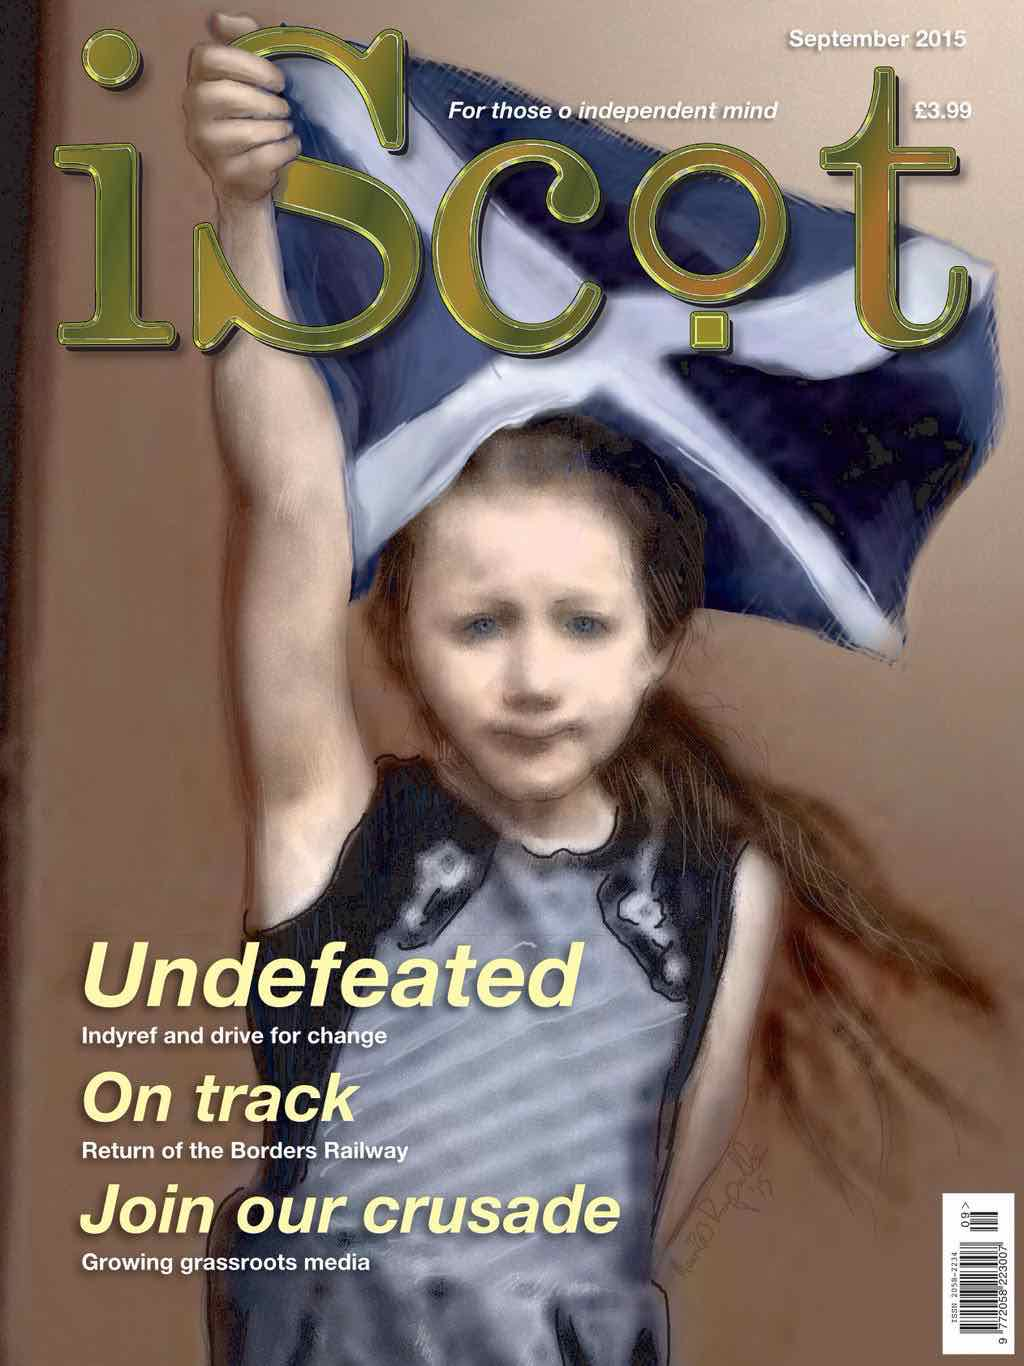 iScot - on sale now